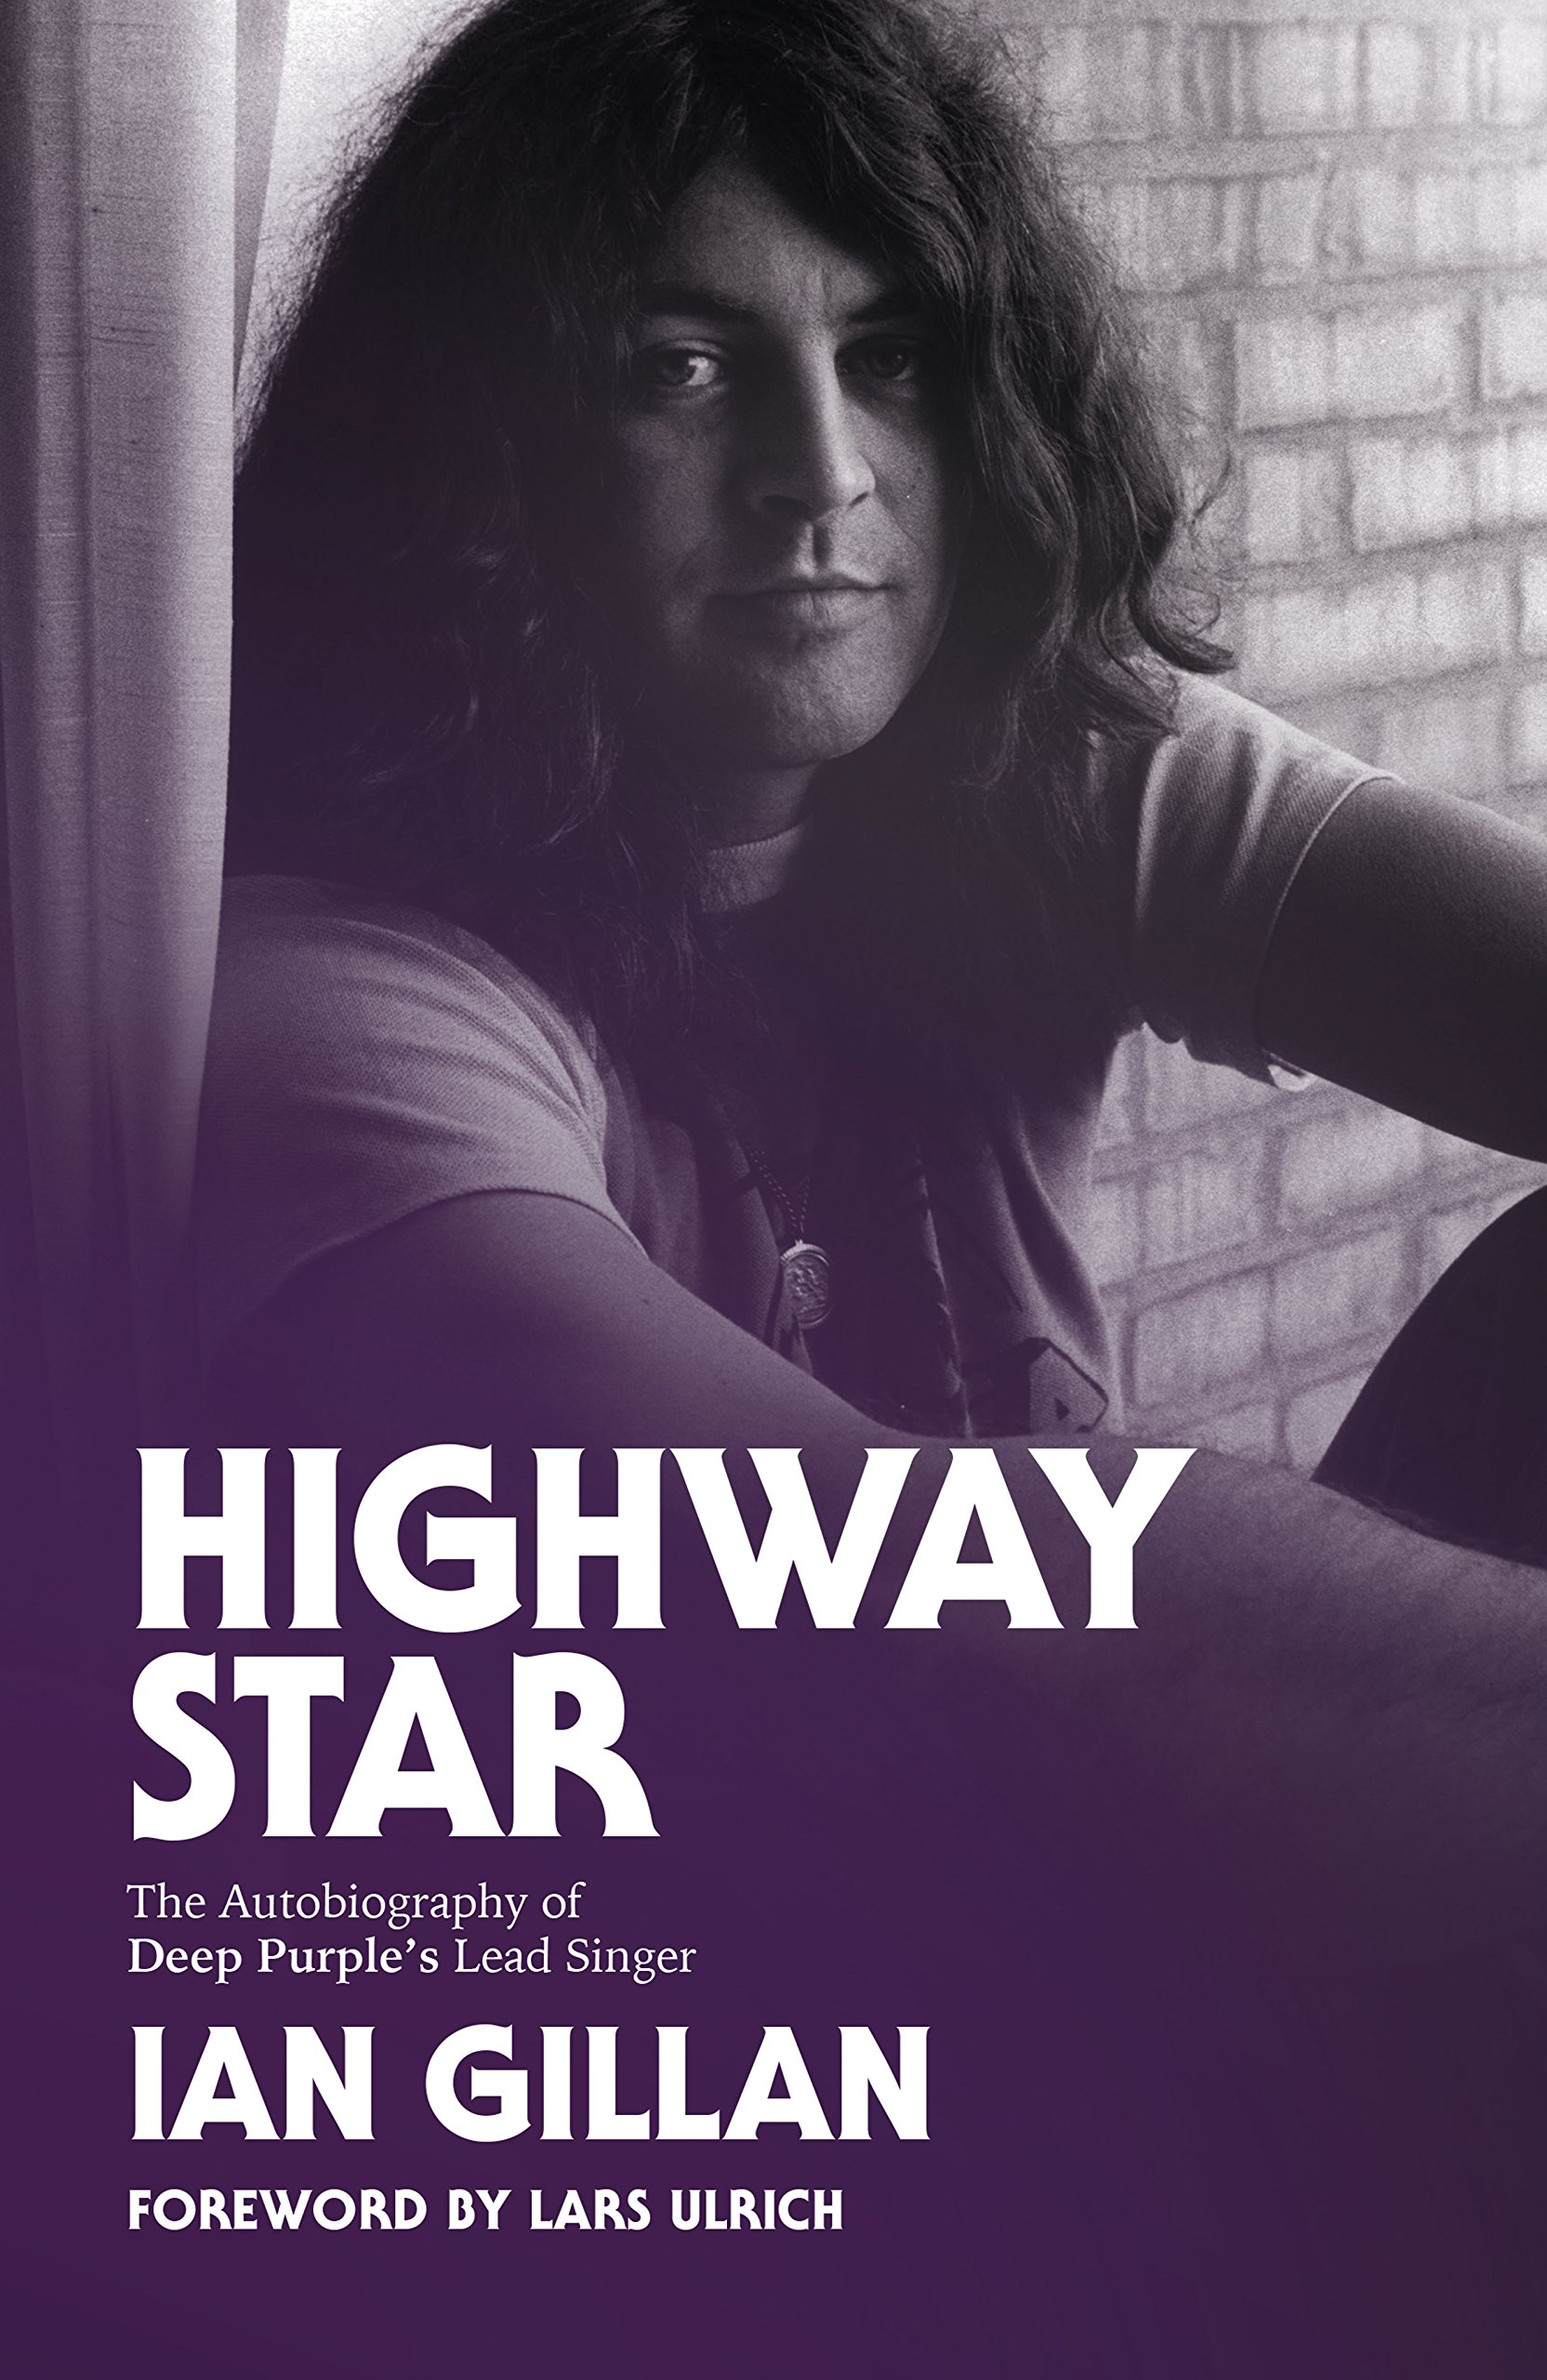 Highway Star: The Autobiography of Deep Purple's Lead Singer Paperback –  September 12, 2017